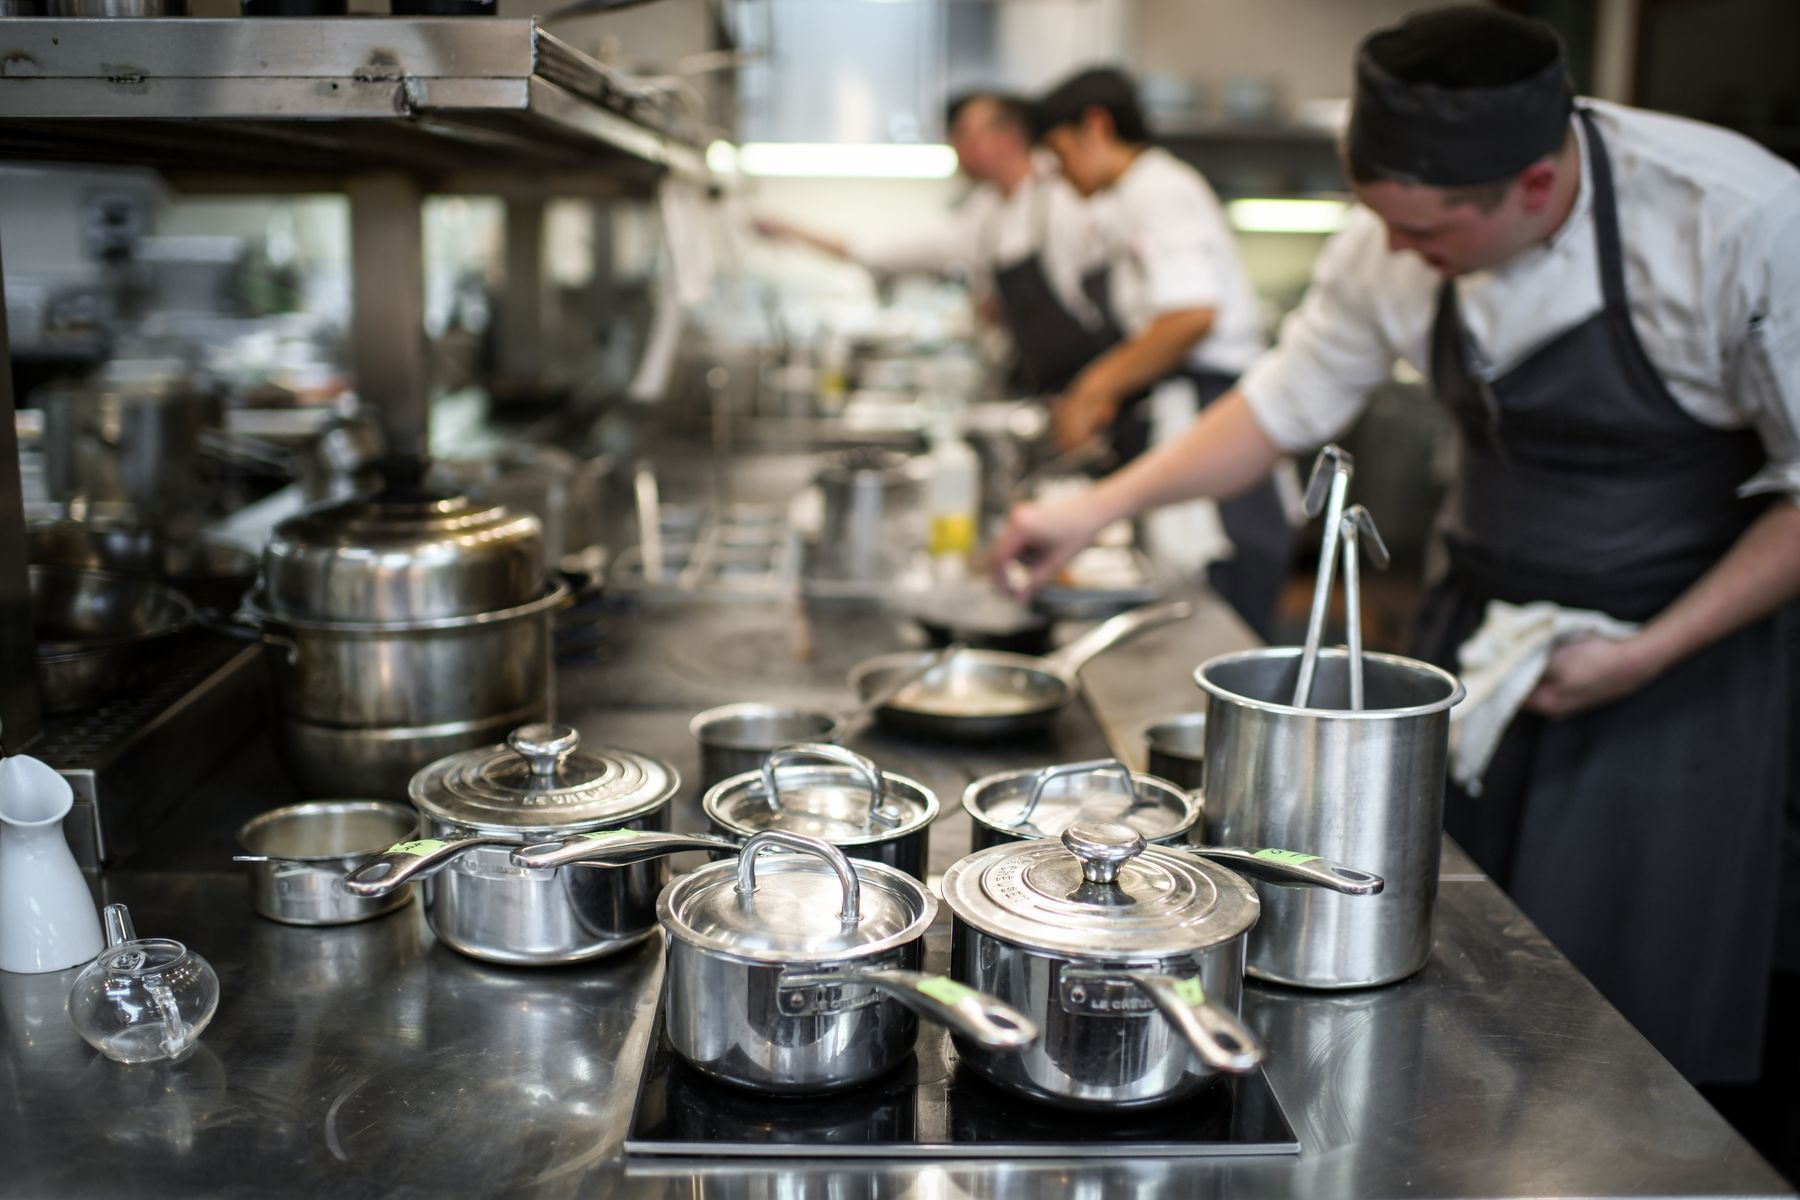 Chef handling pots and pans